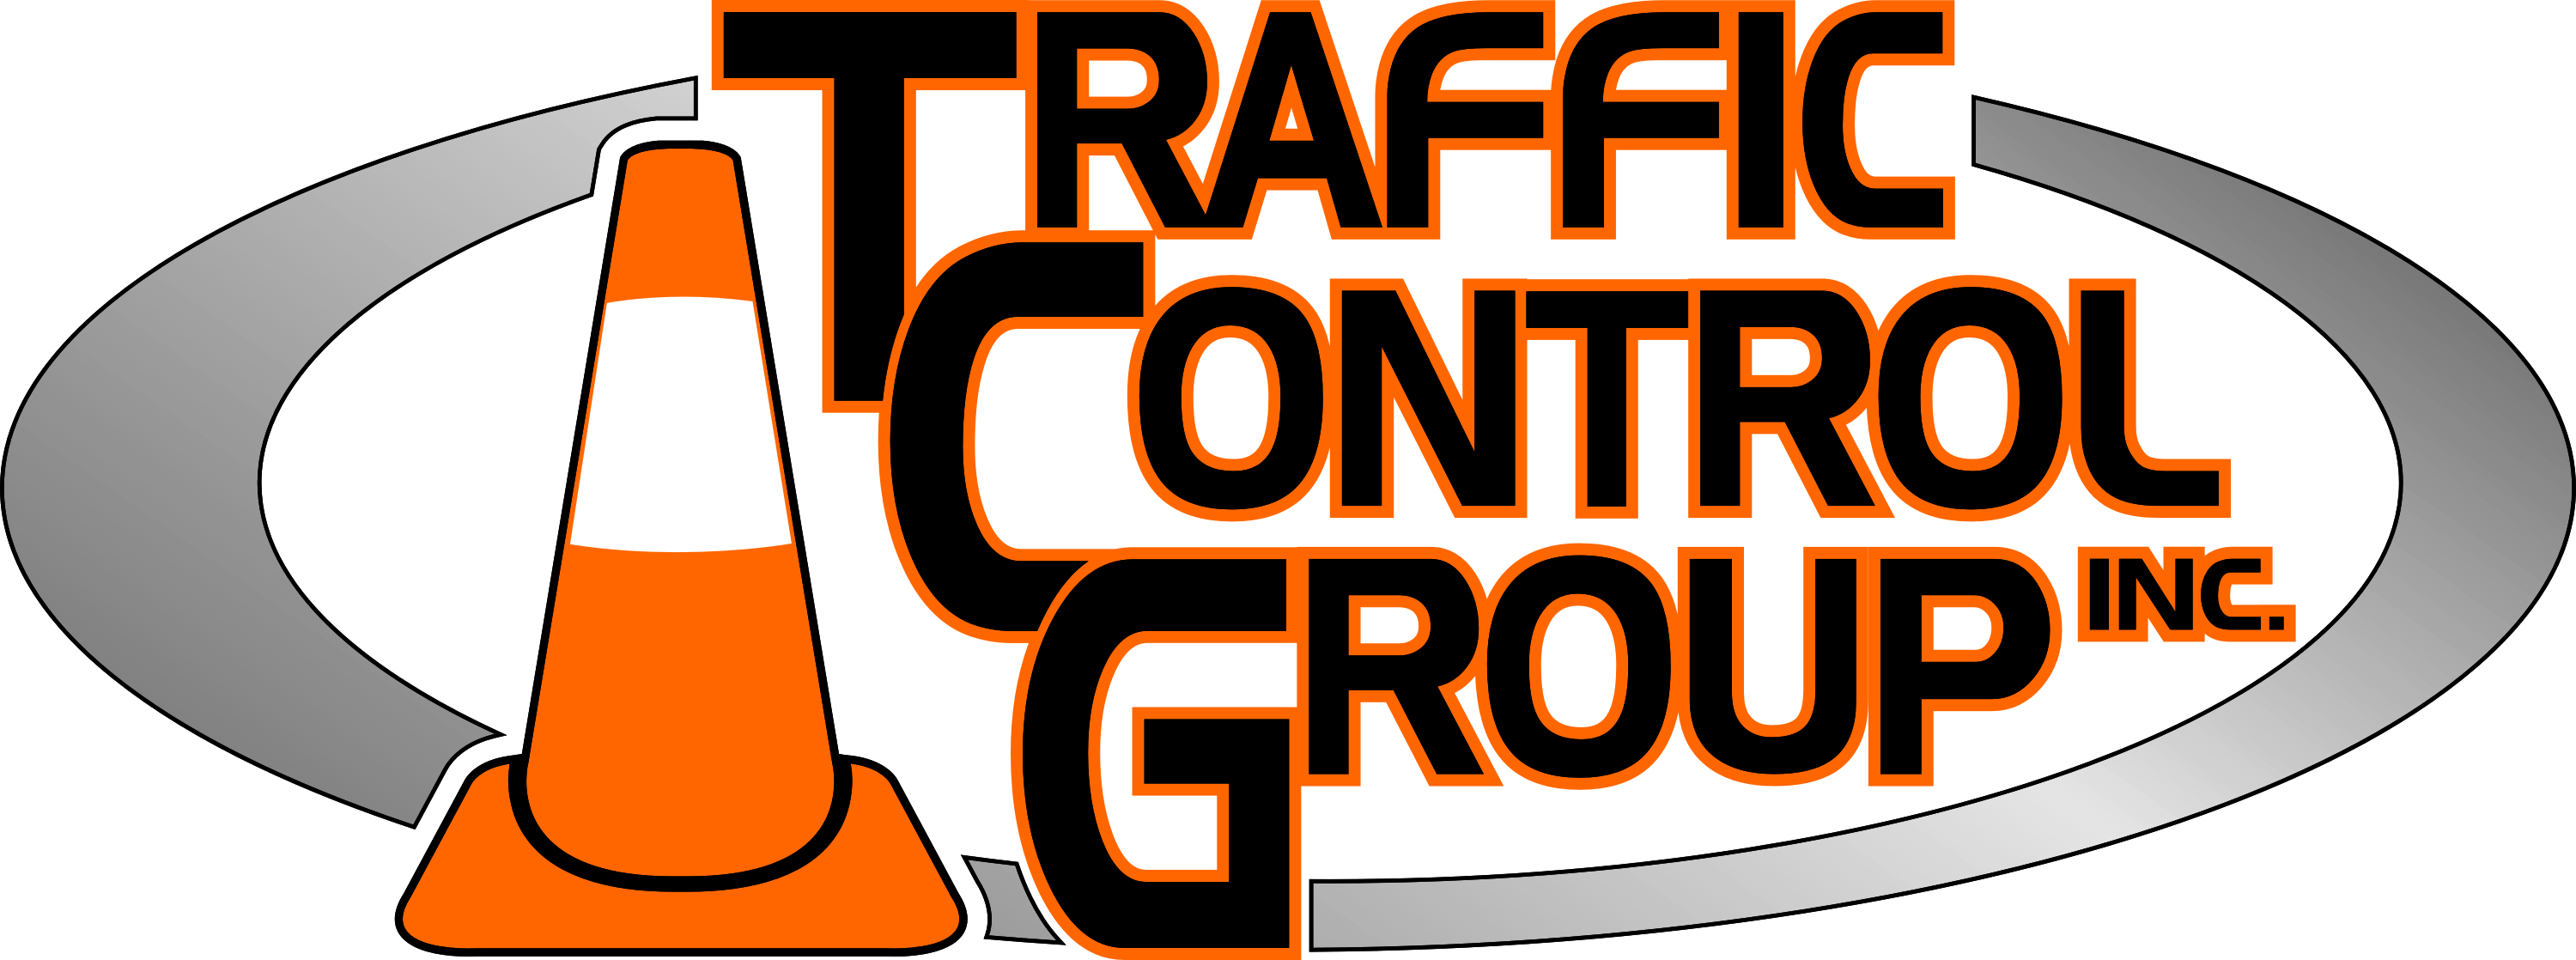 Traffic Control Group Inc.